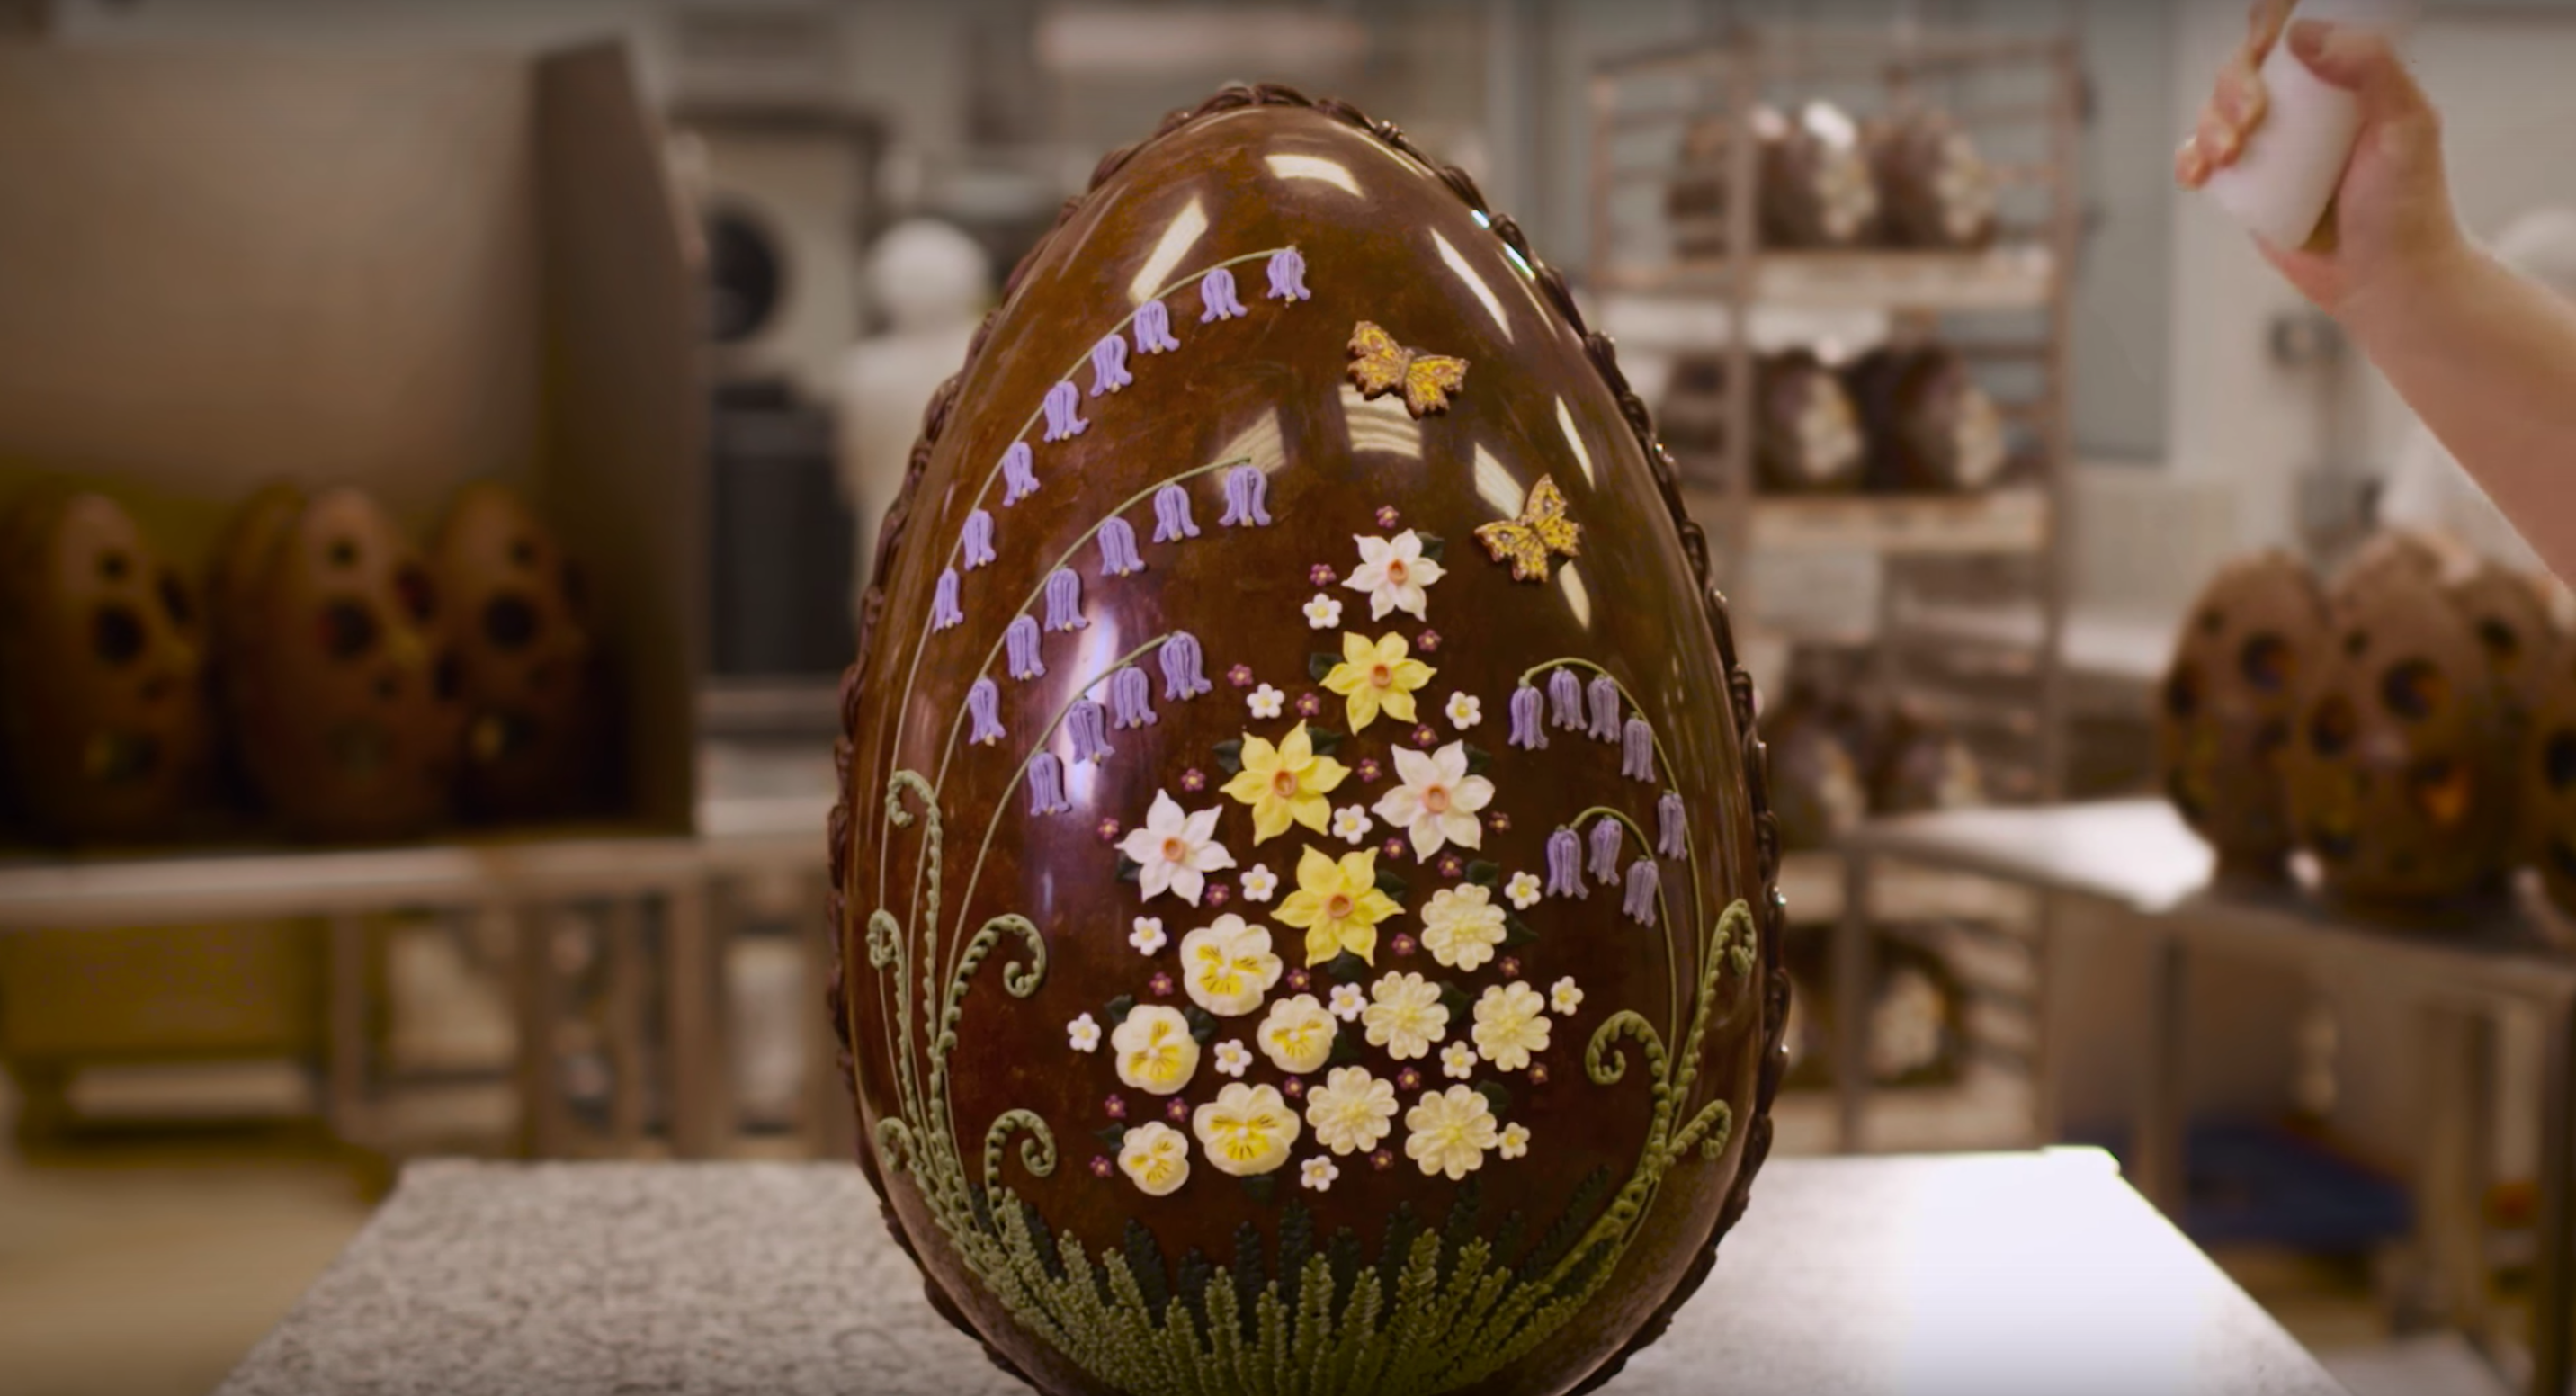 Bettys Imperial Egg